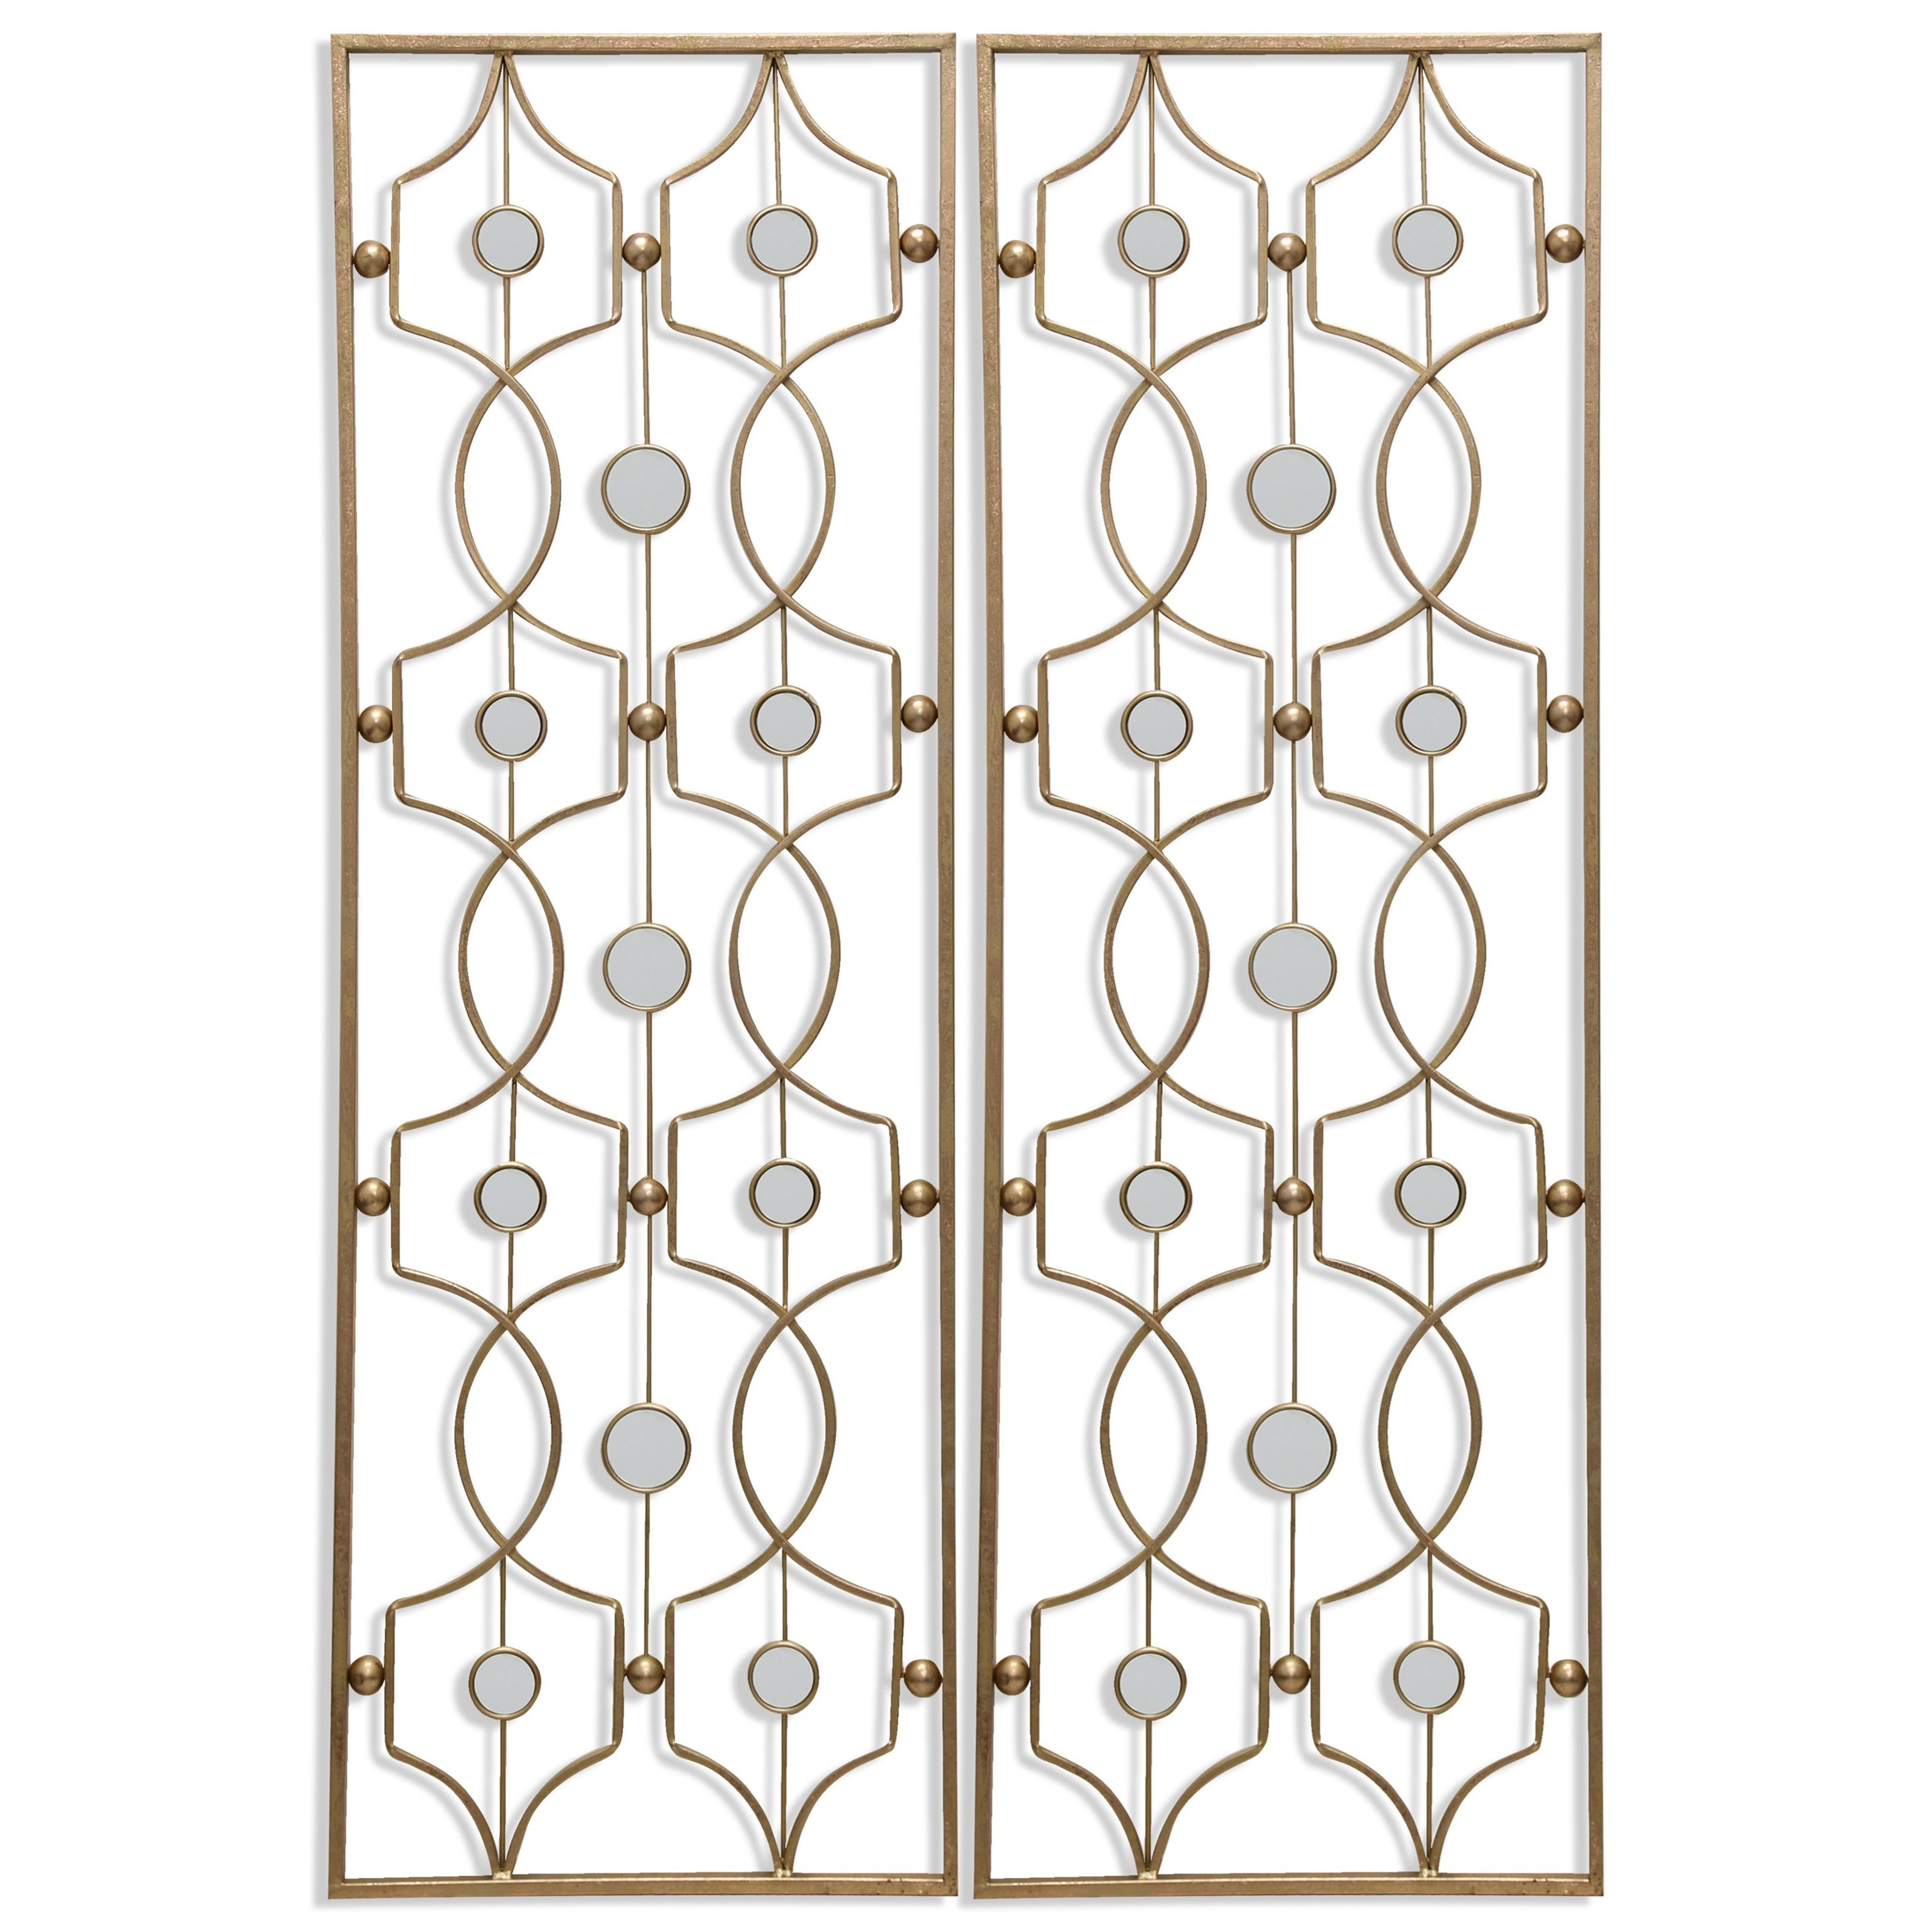 Wall Décor Set of 2 Metal Wall Hangings by StyleCraft at Michael Alan Furniture & Design